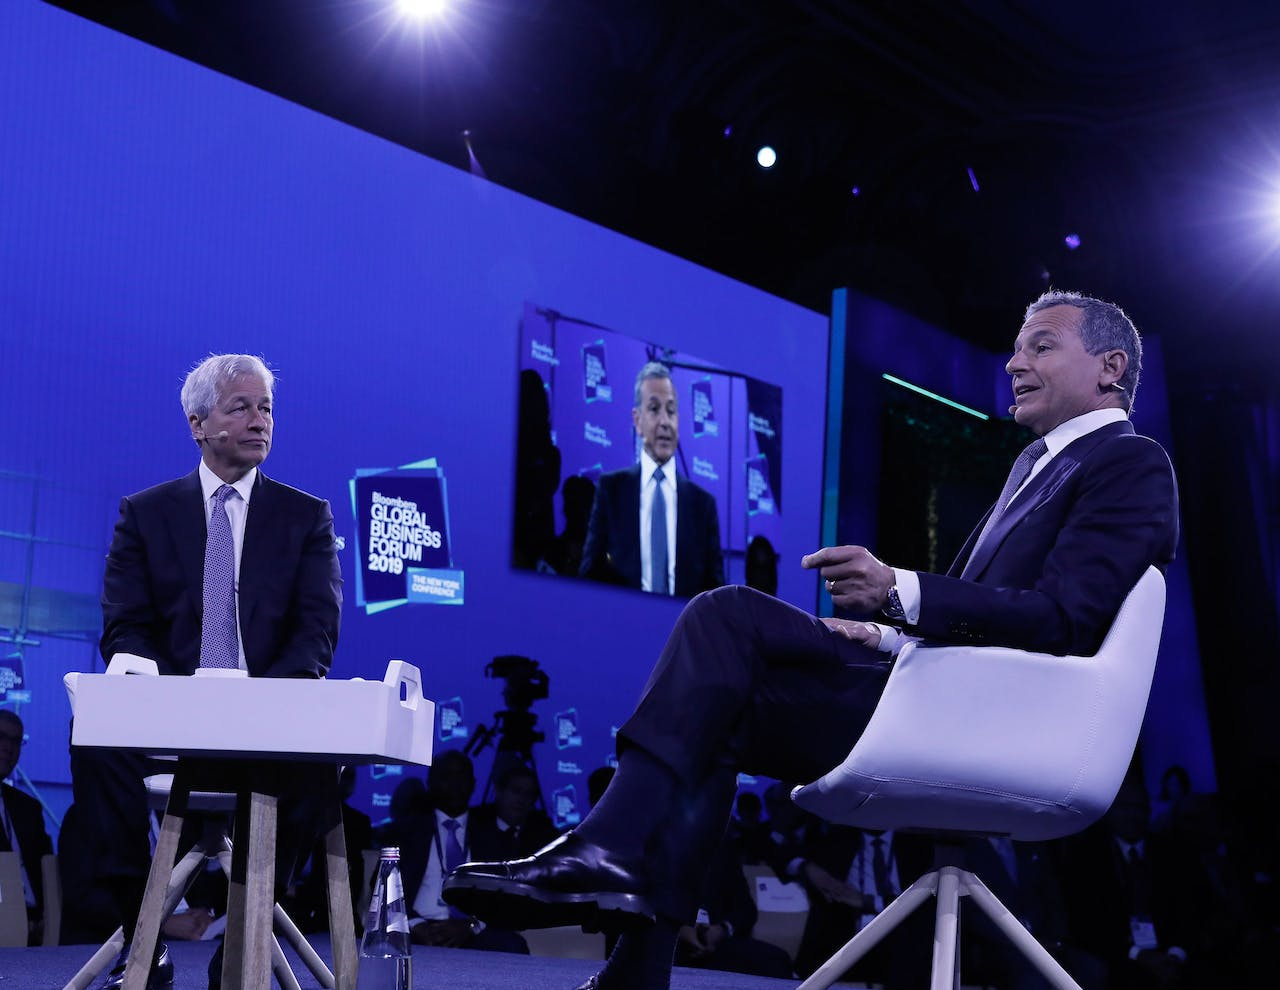 2019-09-25 20:43:05 epa07869534 Robert Iger, chairman and chief executive officer of The Walt Disney Company (R) and Jamie Dimon, Chairman and CEO of JPMorgan Chase speak at the Bloomberg Global Business Forum 2019 at the Plaza Hotel in New York, New York, USA, 25 September 2019. World leaders gathered for the United Nations General Debate this week, and business leaders are gathering for the event, which was organized by Bloomberg Philanthropies, to discuss economic and trade issues, globalization, innovation, and competition. EPA/PETER FOLEY